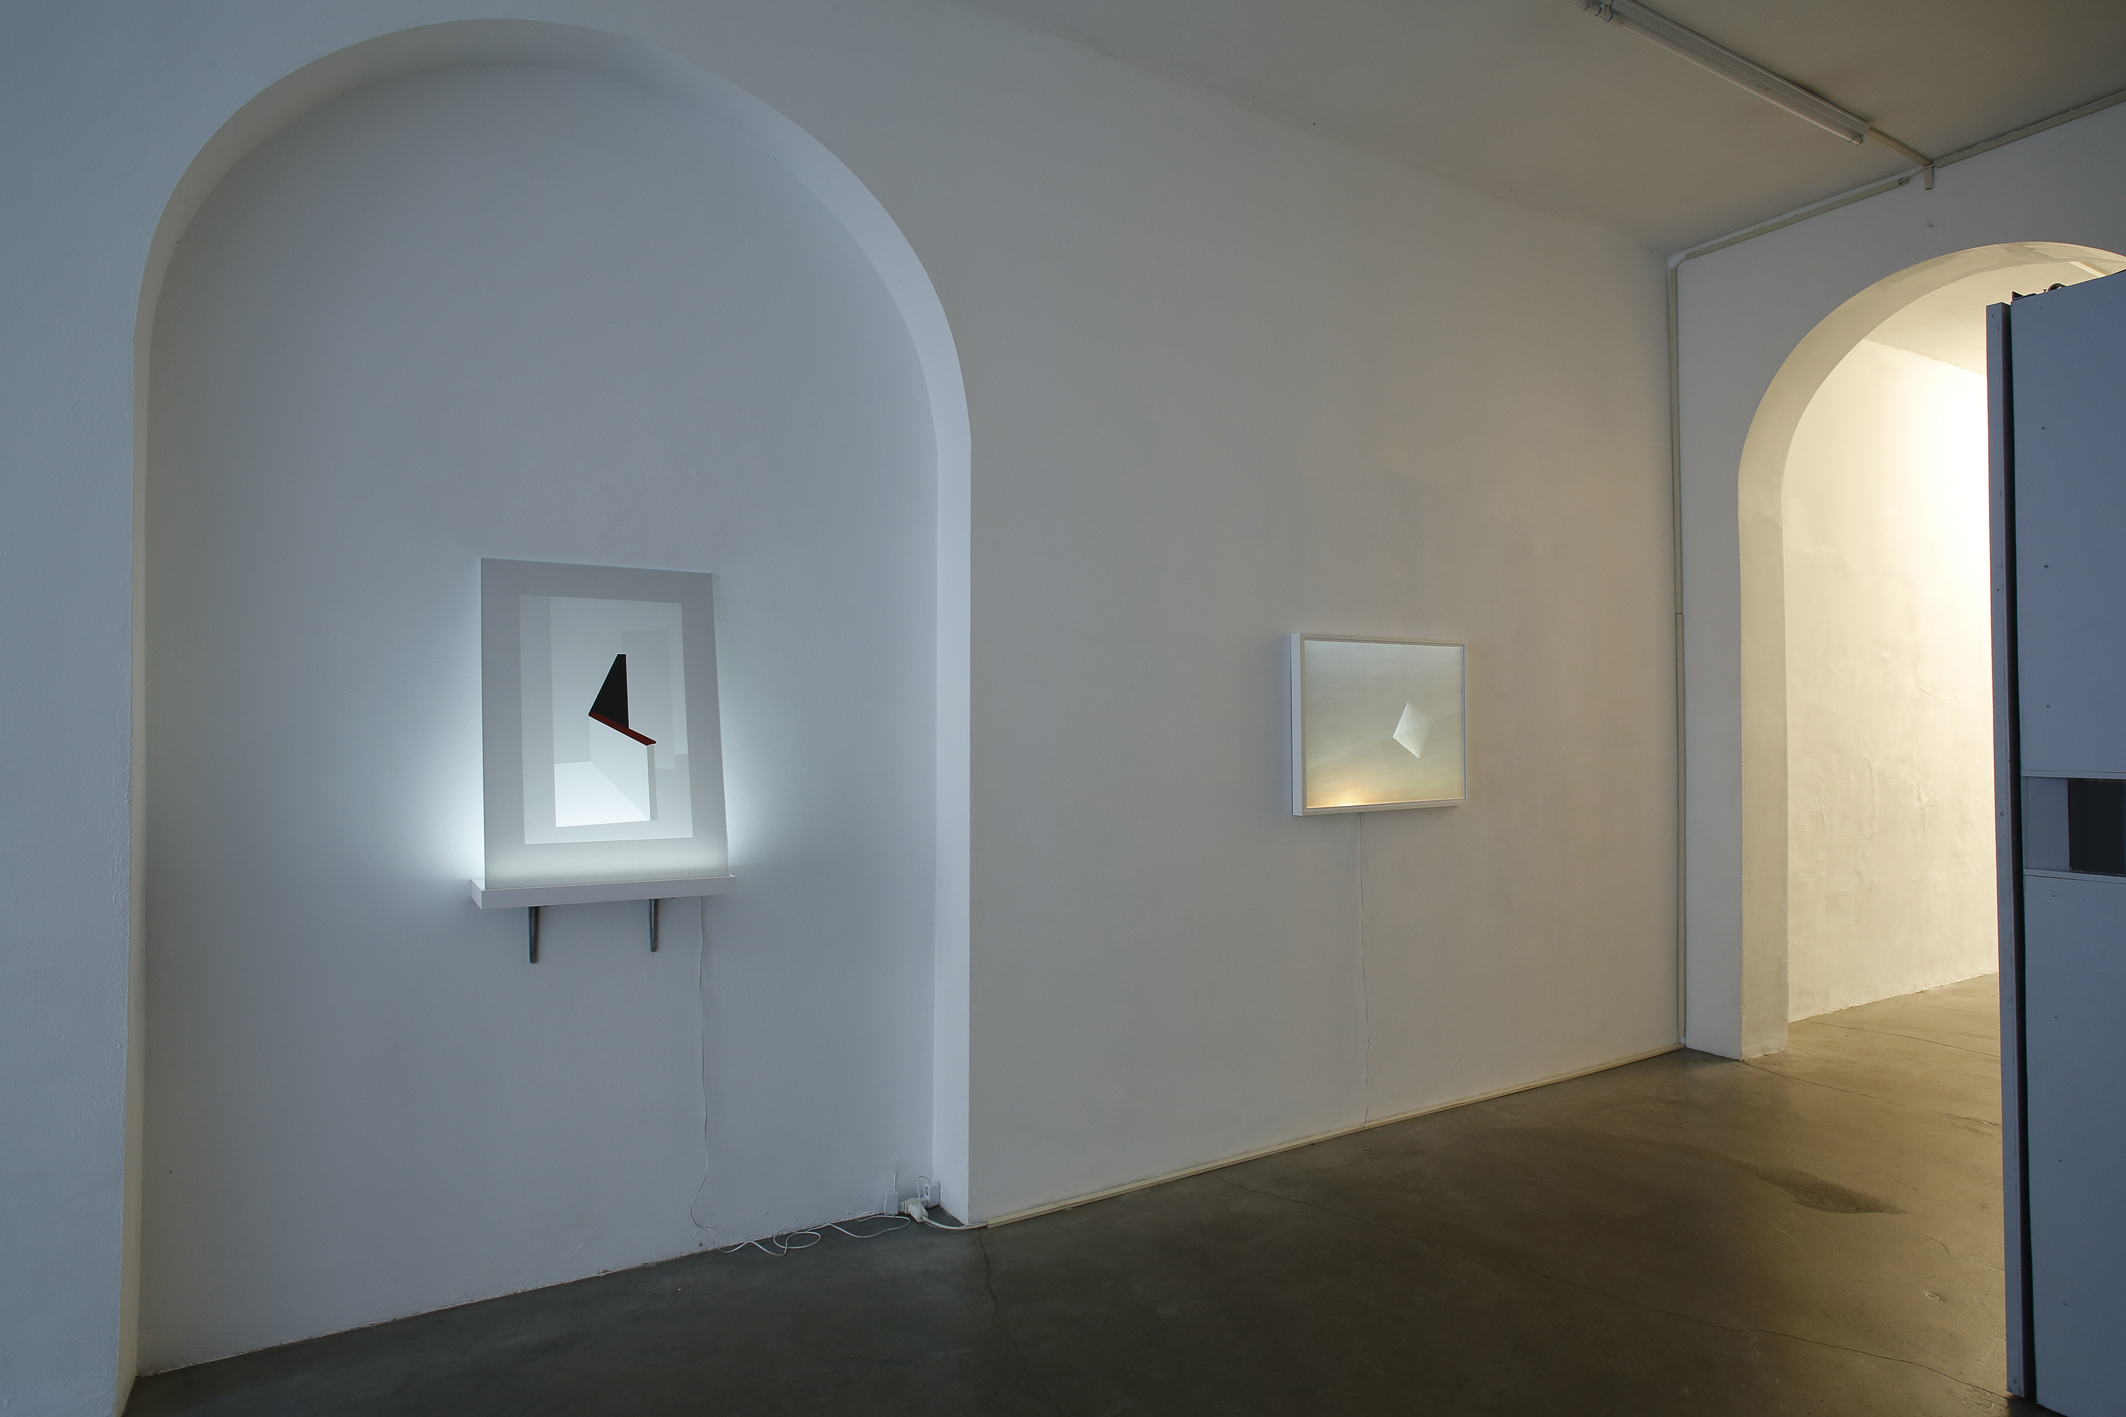 Solo show in TORCH Gallery, image by Bouwe Jan Swart